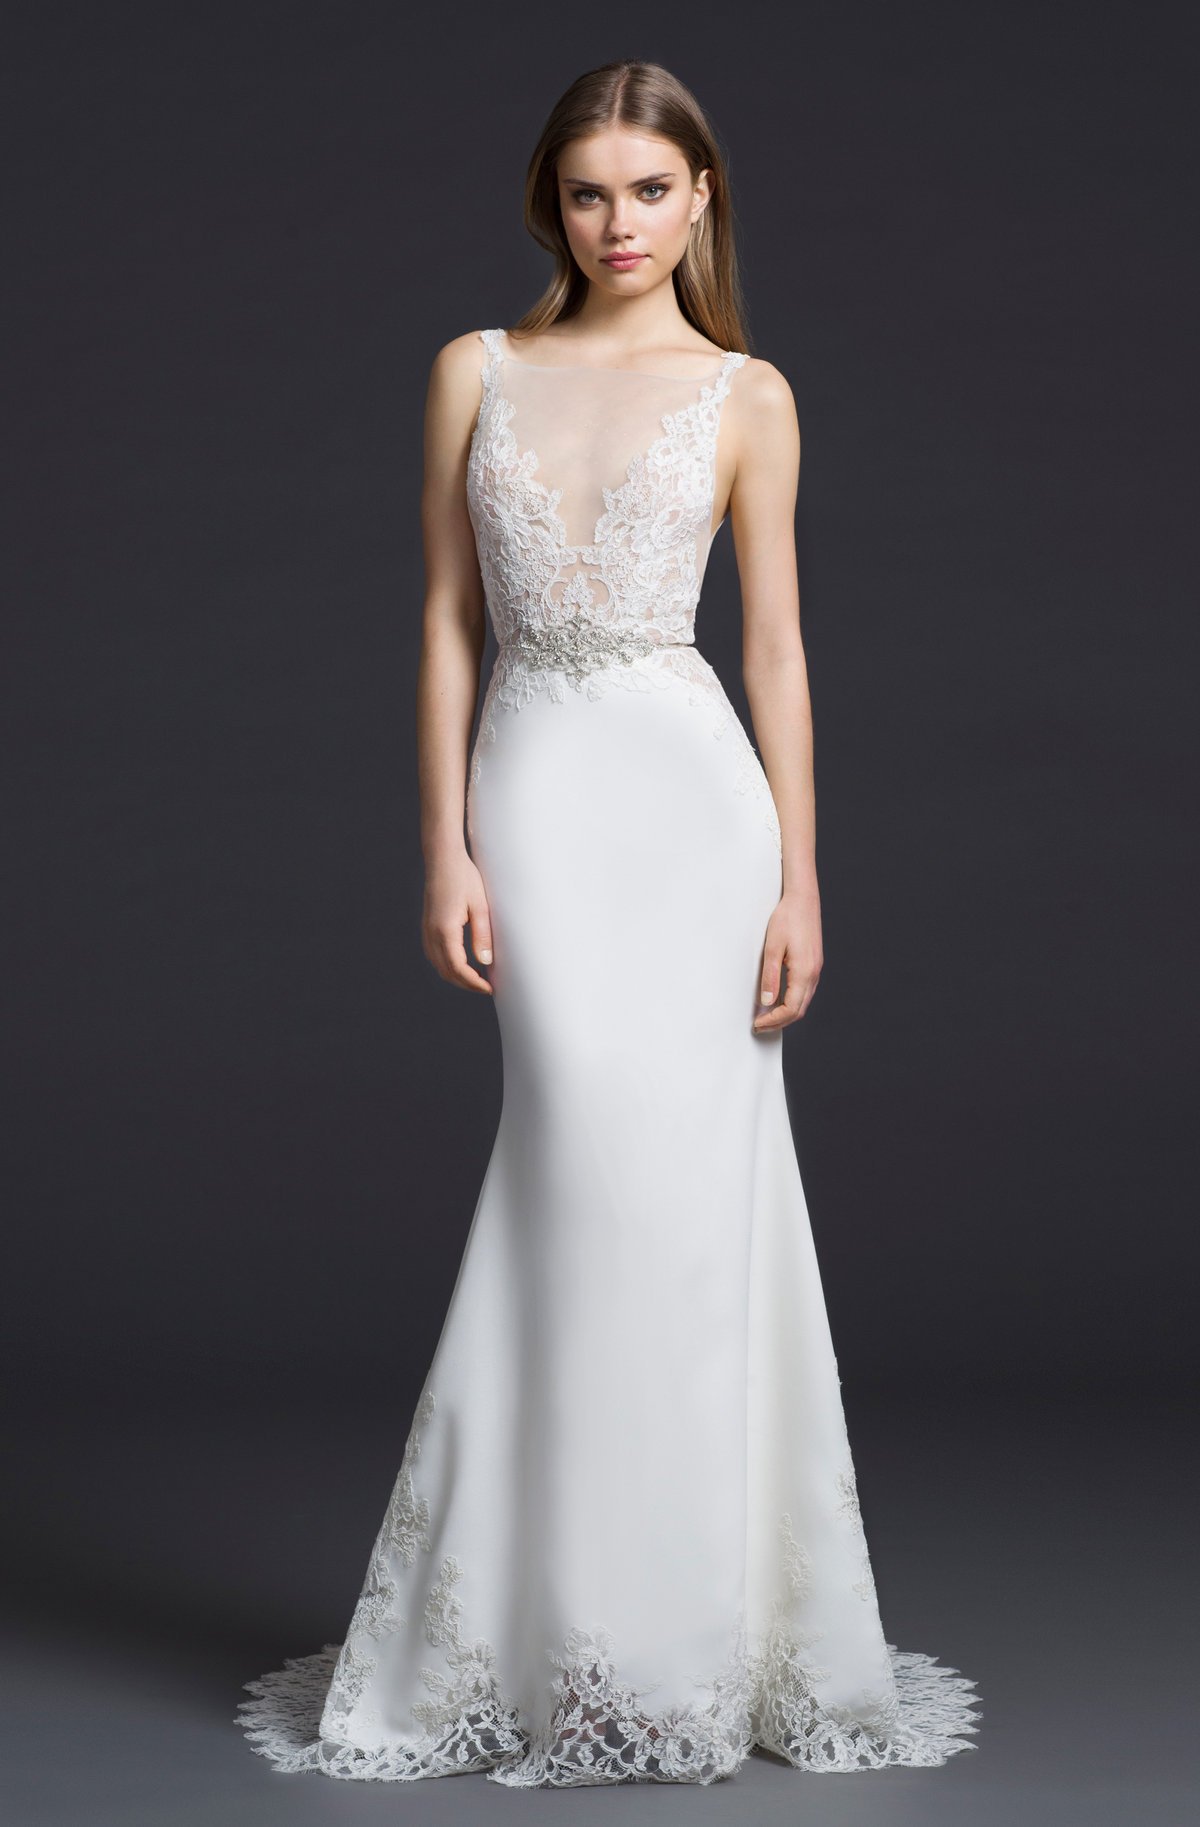 Bridal Gowns and Wedding Dresses by JLM Couture Style 3655